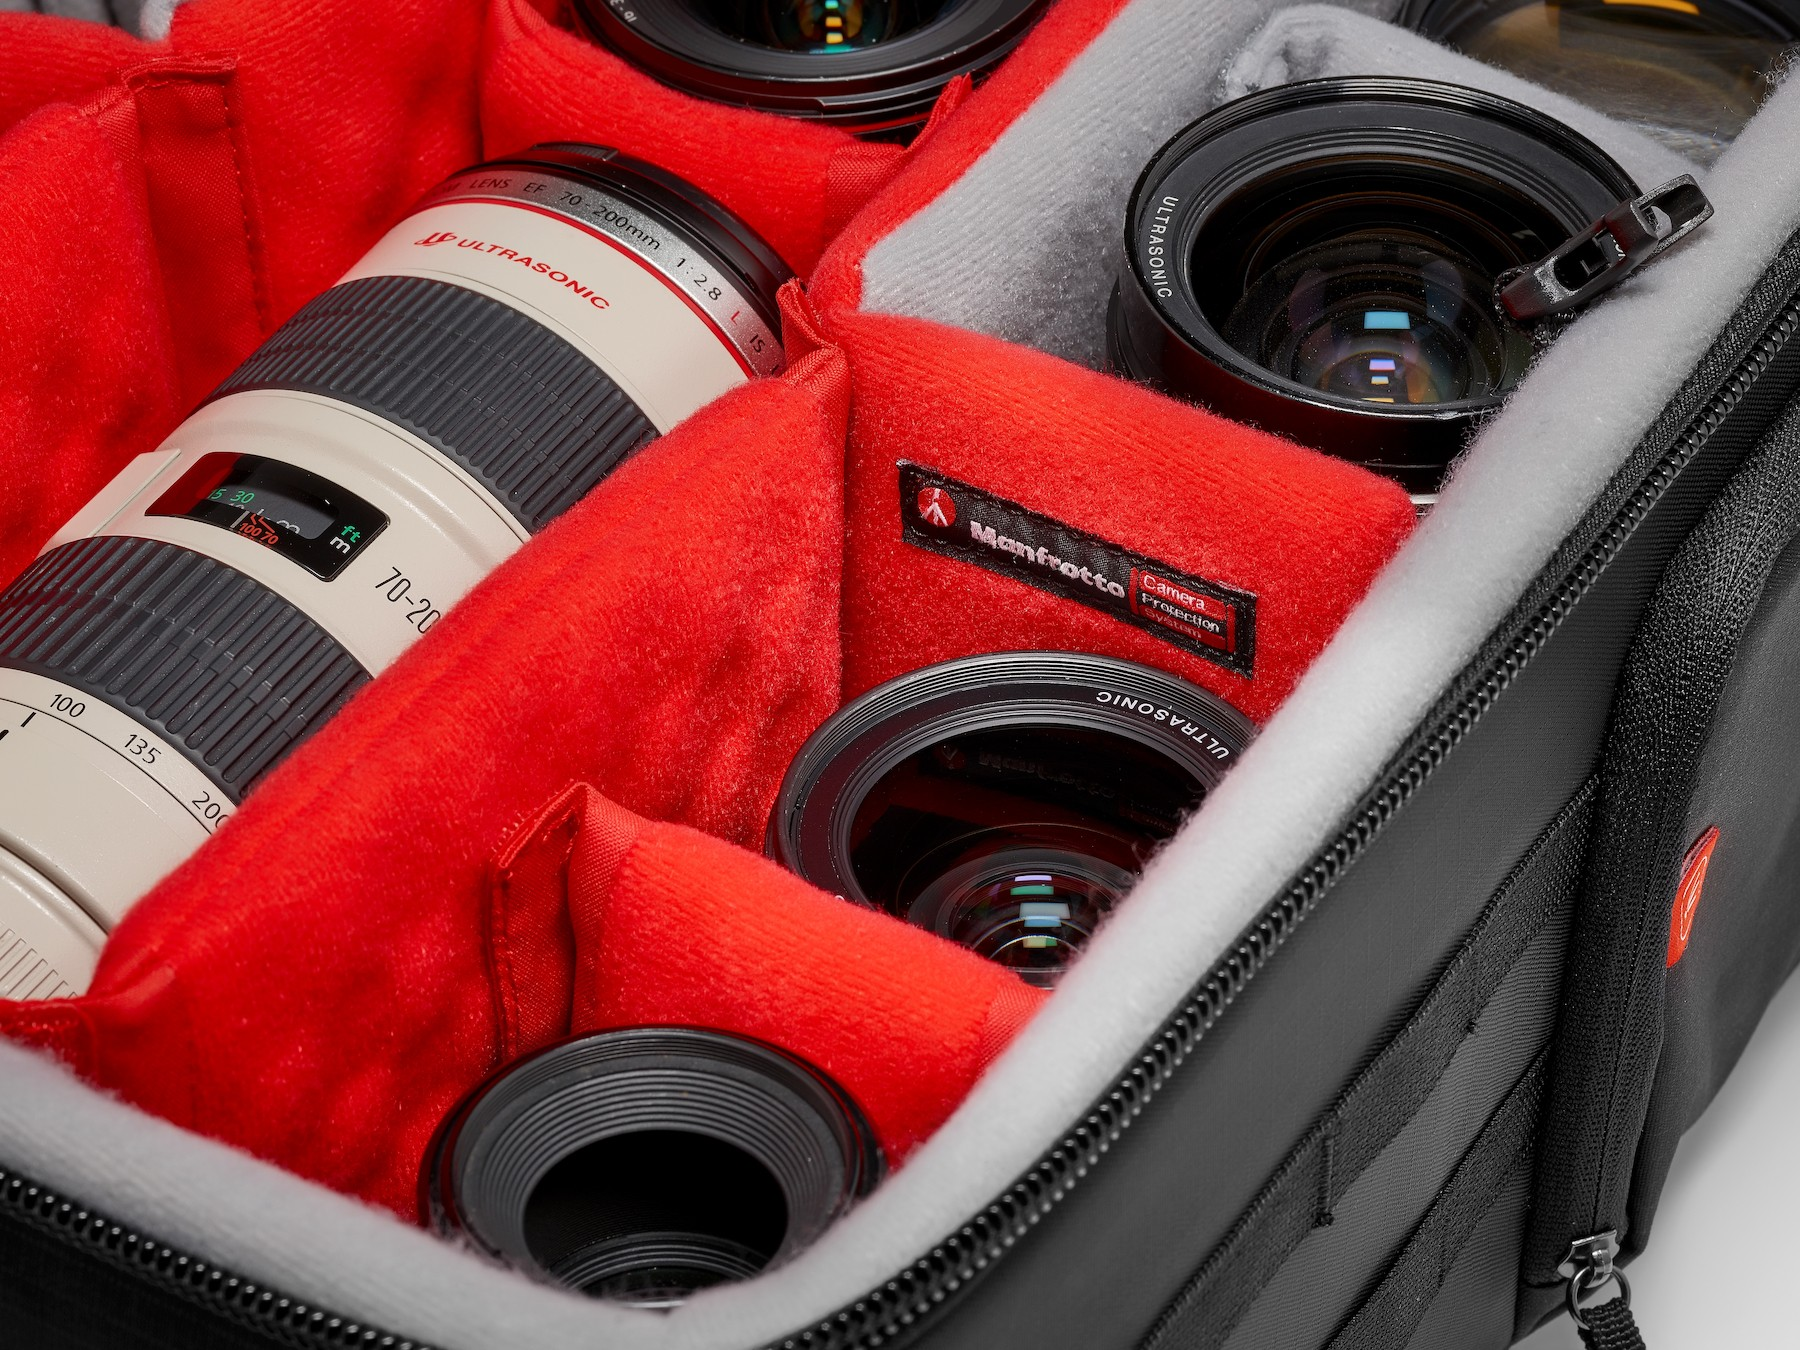 Camera protection system by Manfrotto